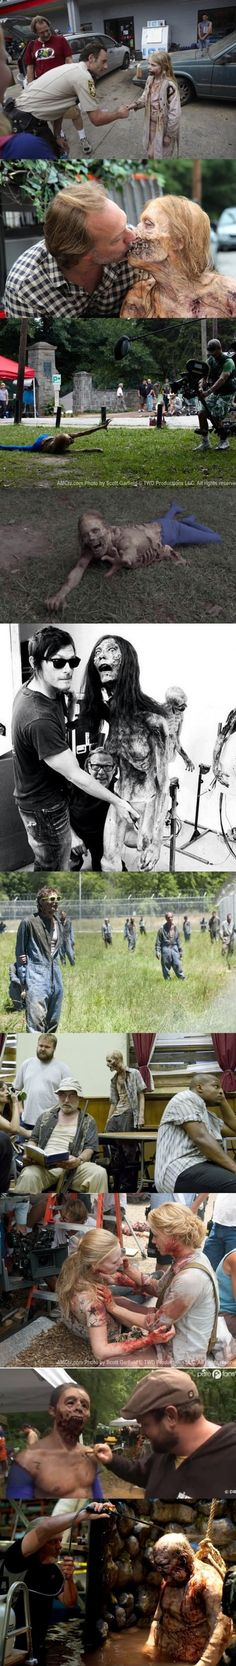 The Walking Dead ...backstage walking dead...awesome stuff